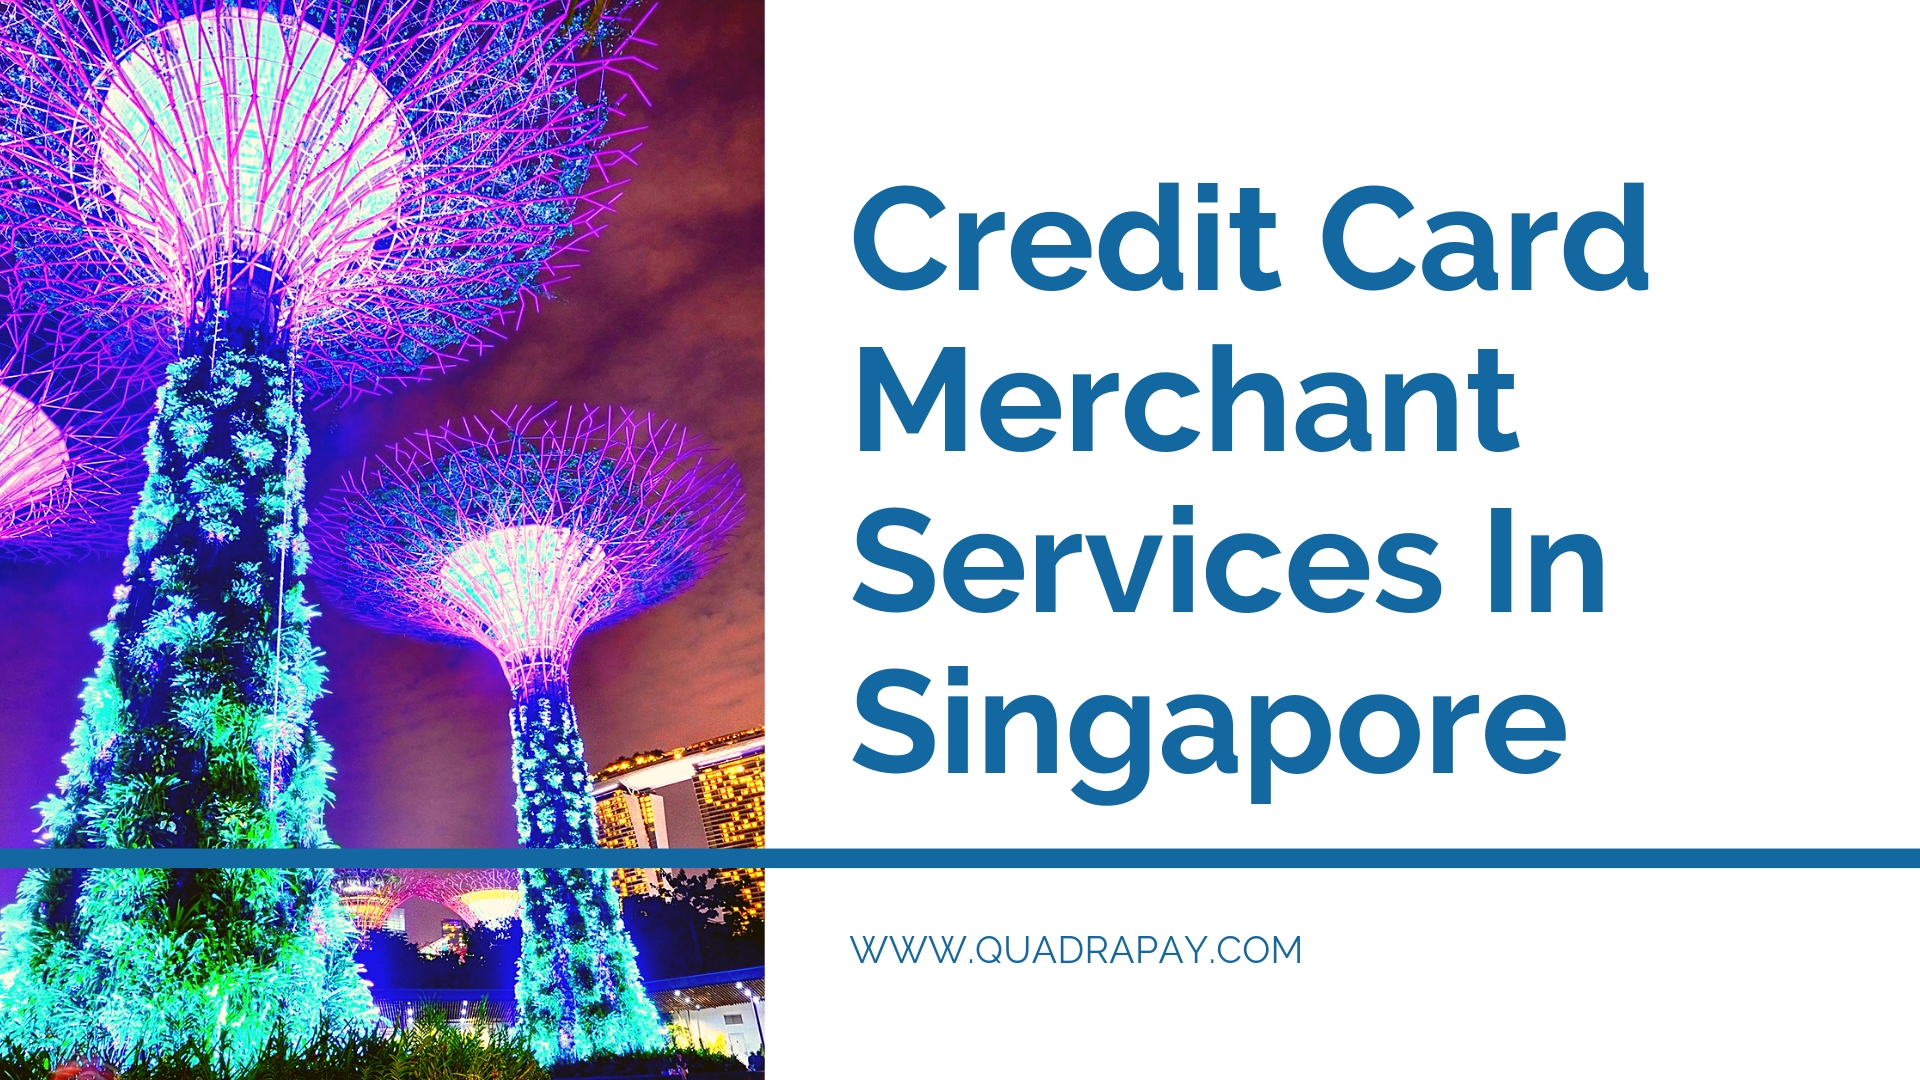 Credit Card Merchant Services In Singapore